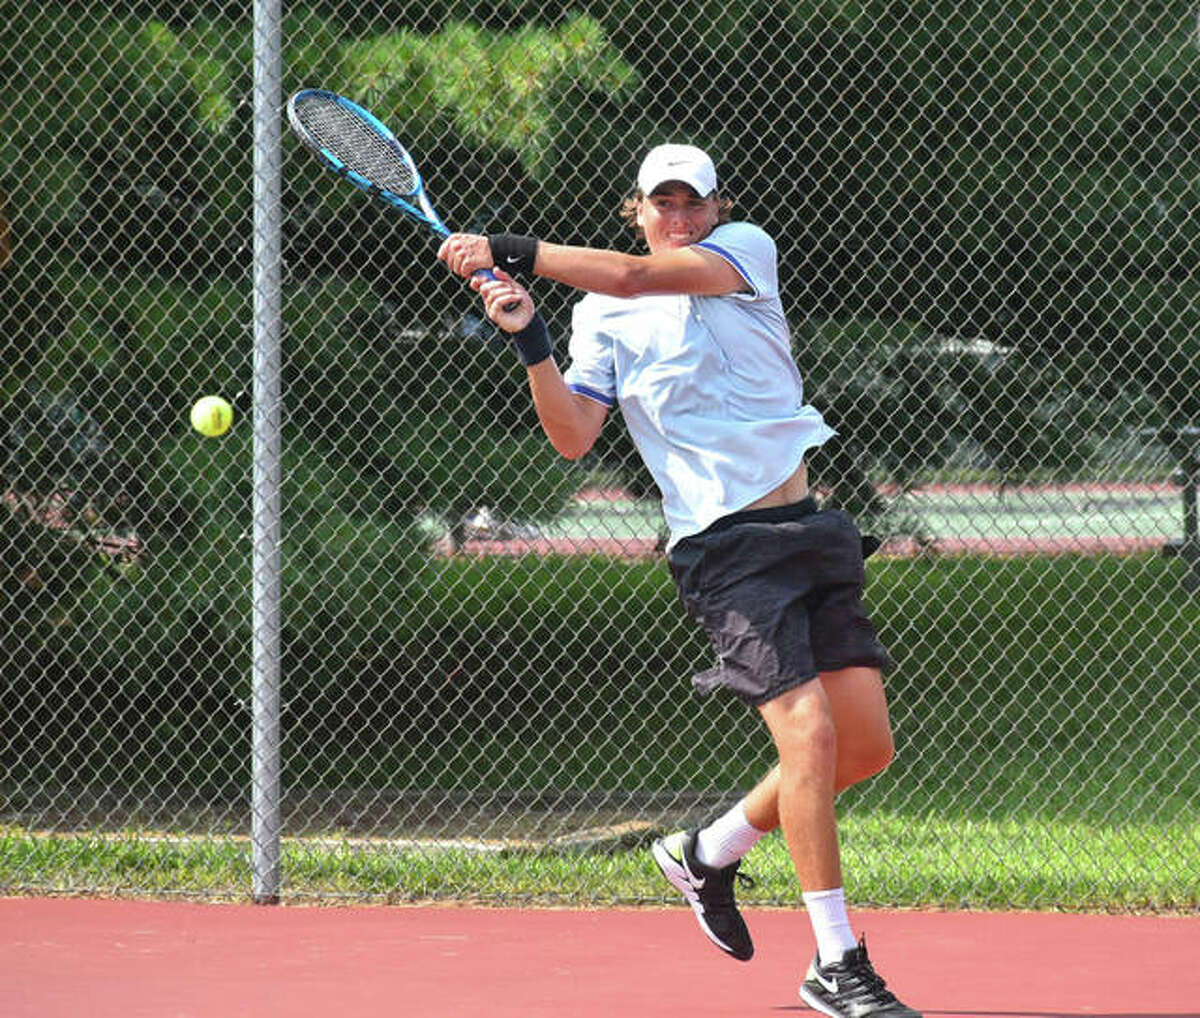 Jamie Vance hits a backhand shot during his doubles final match in the Doubles Shootout on Saturday at the EHS Tennis Center in Edwardsville.